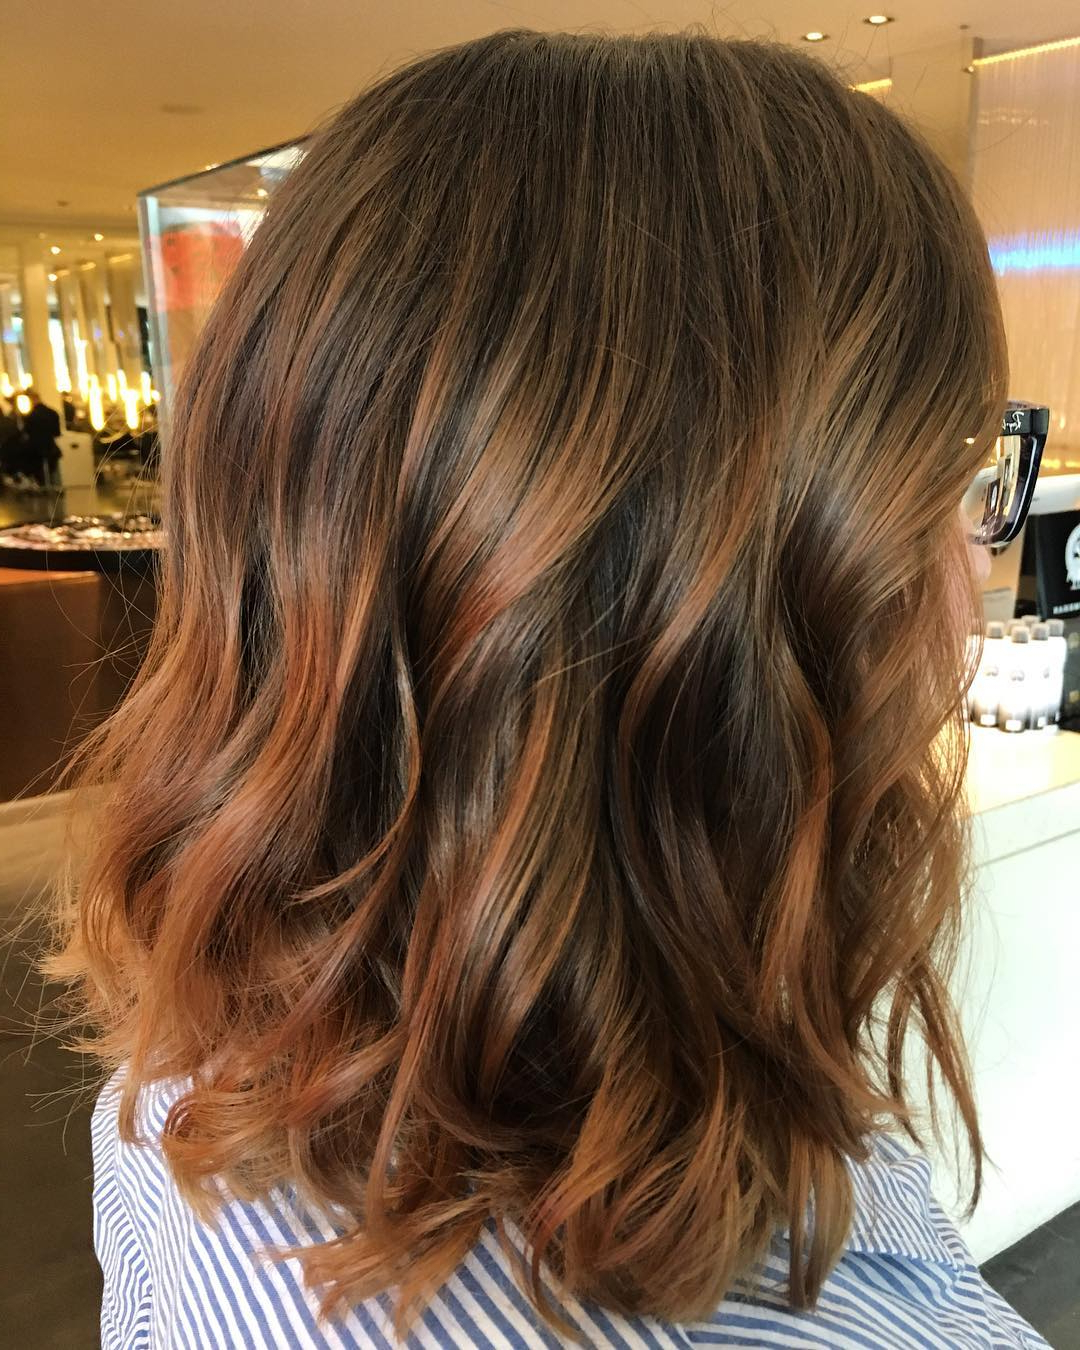 25 Exciting Medium Length Layered Haircuts – Popular Haircuts Throughout Current Medium Hairstyles With Red Highlights (Gallery 18 of 20)